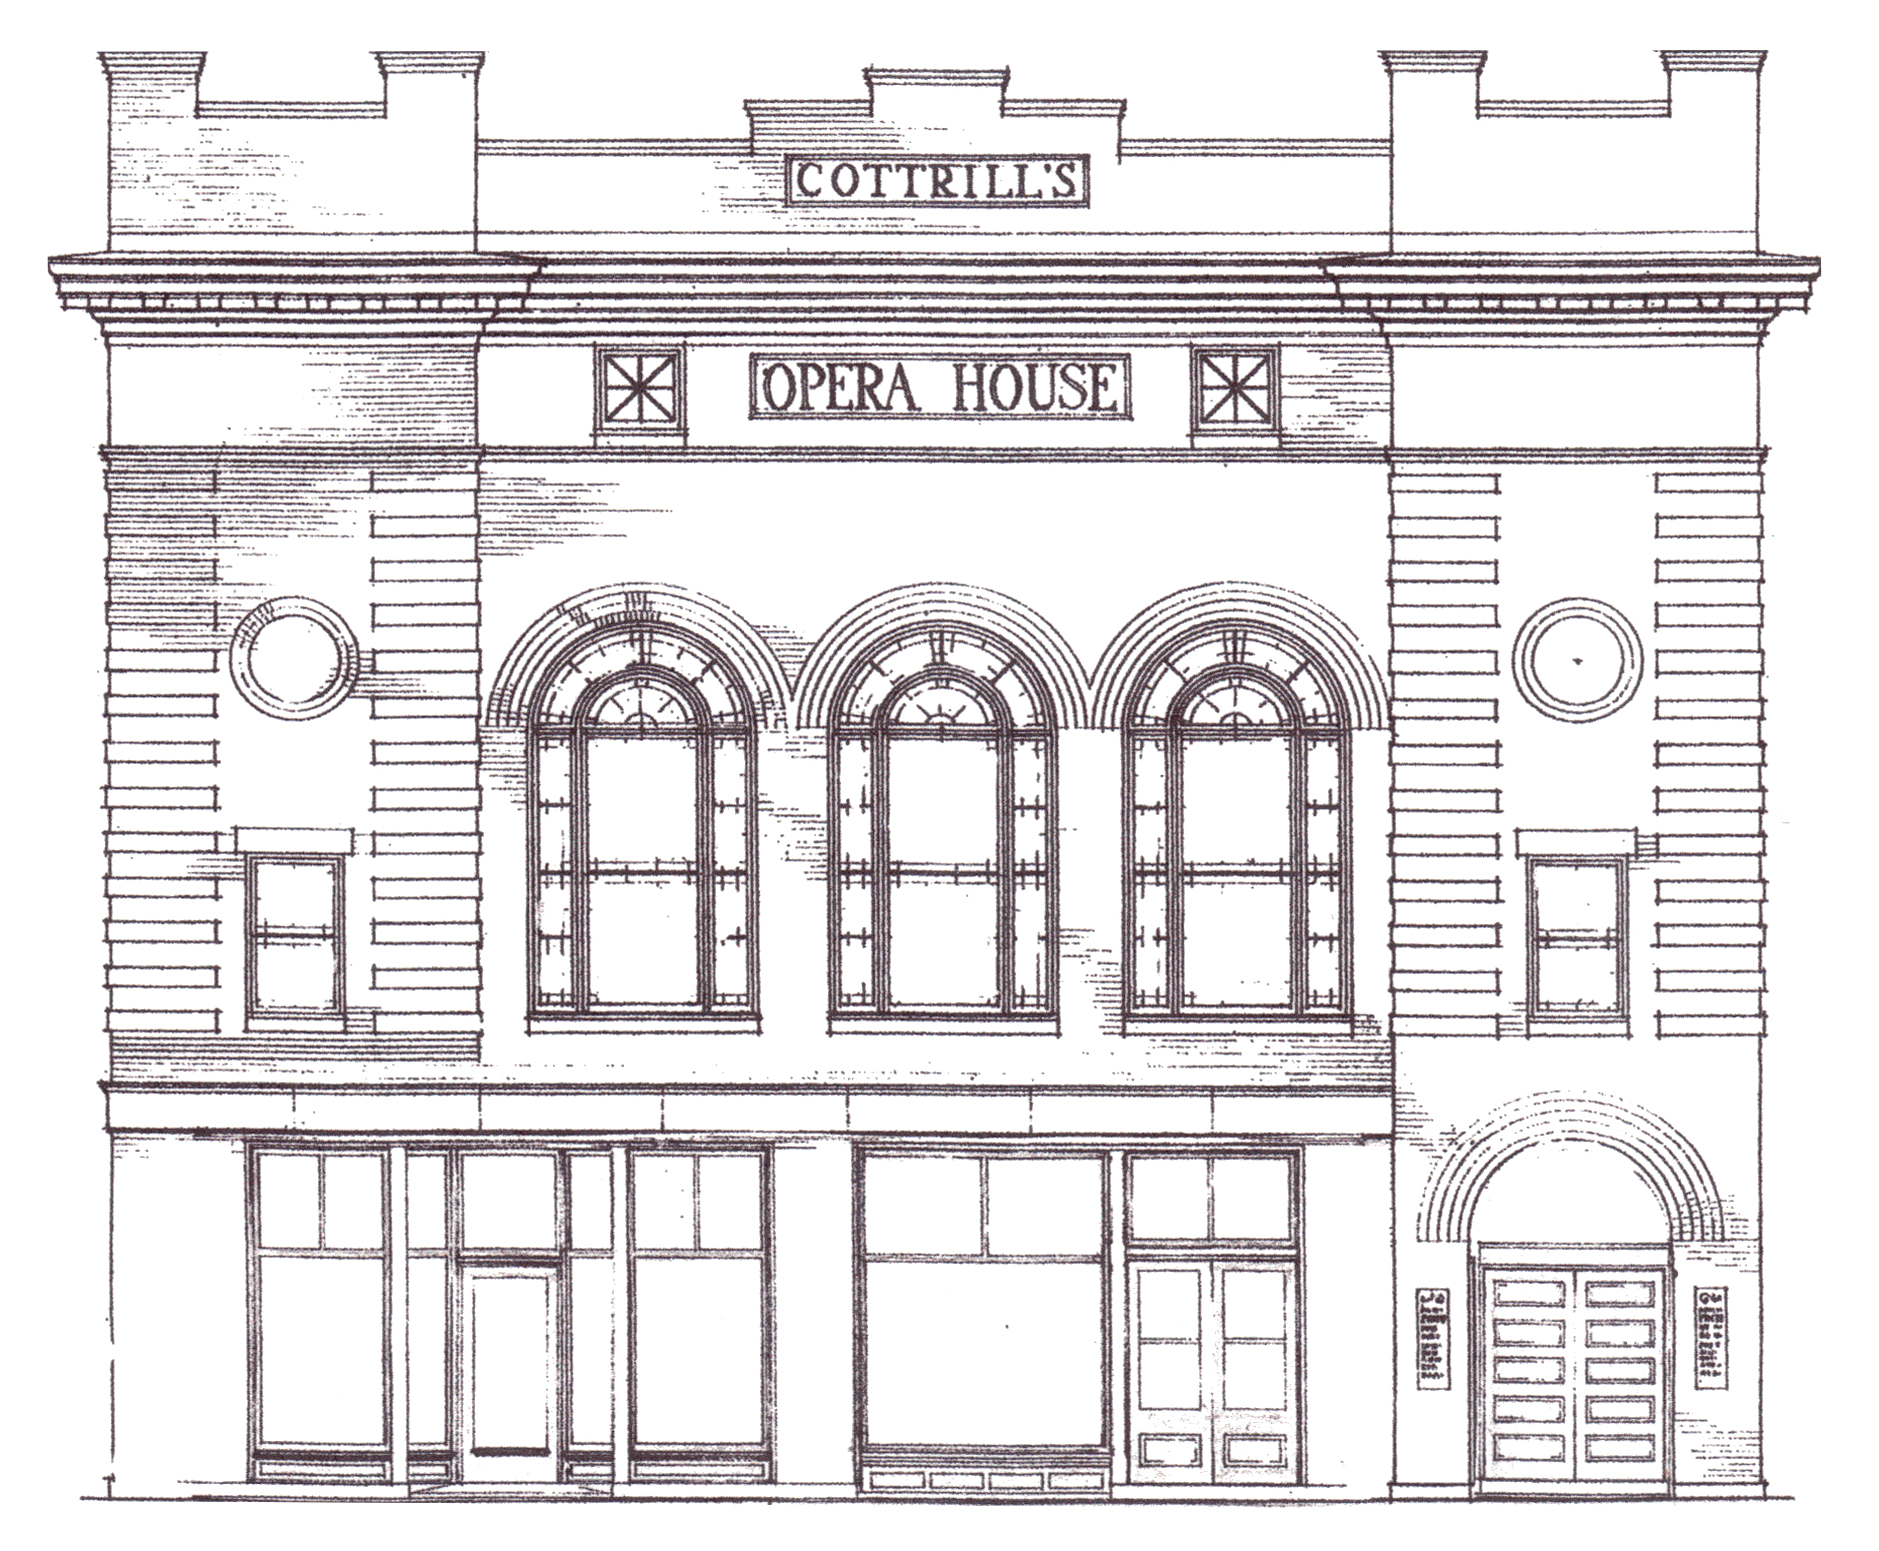 The historical façade of Cottrill's Opera House.